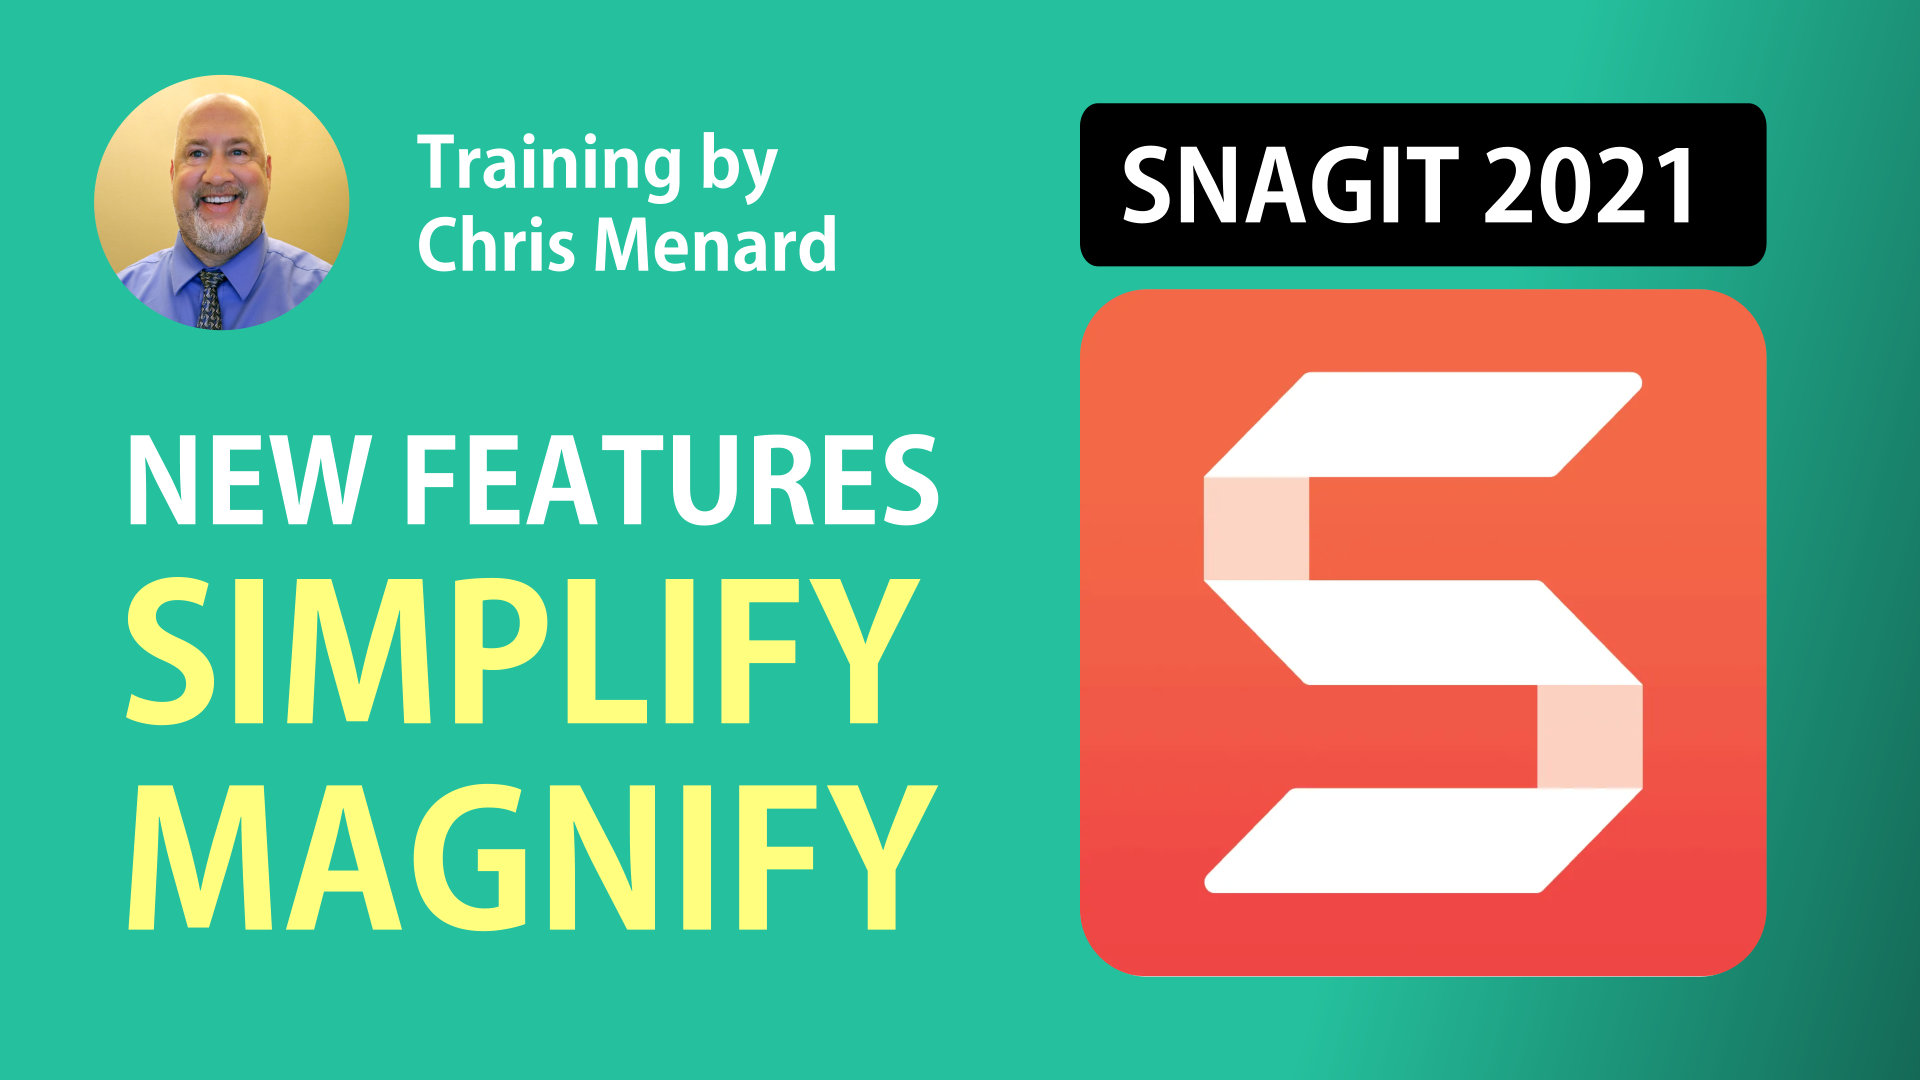 Snagit 2021 - Simplify and Magnify - Two New Features